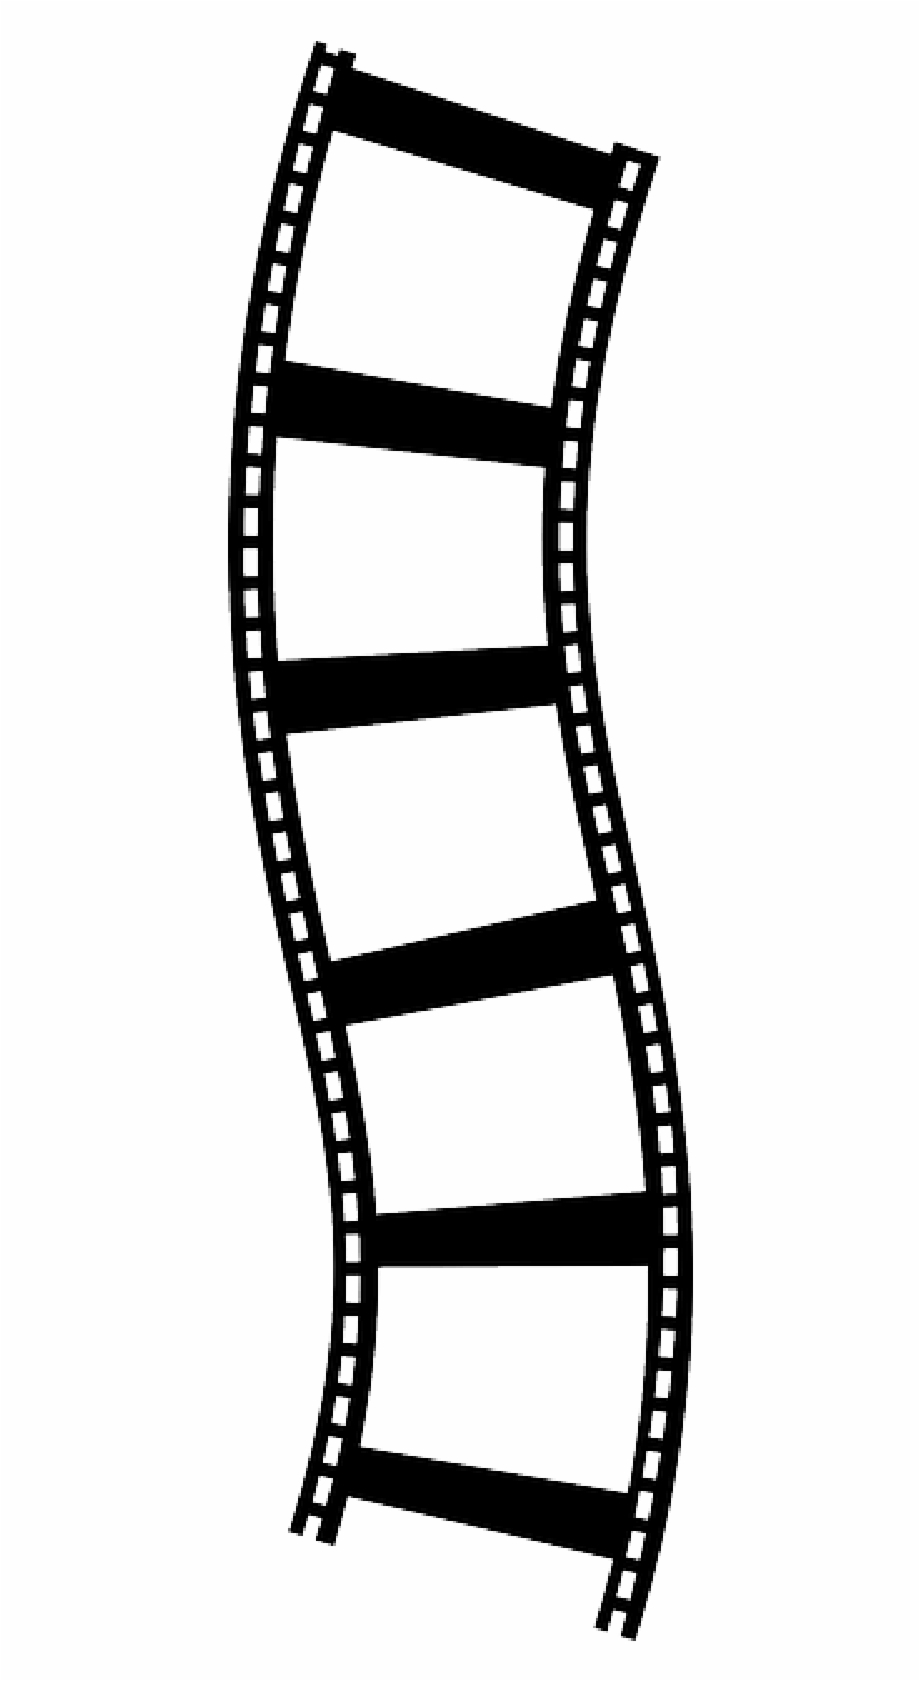 Movie Reel Showing Post Clipart.